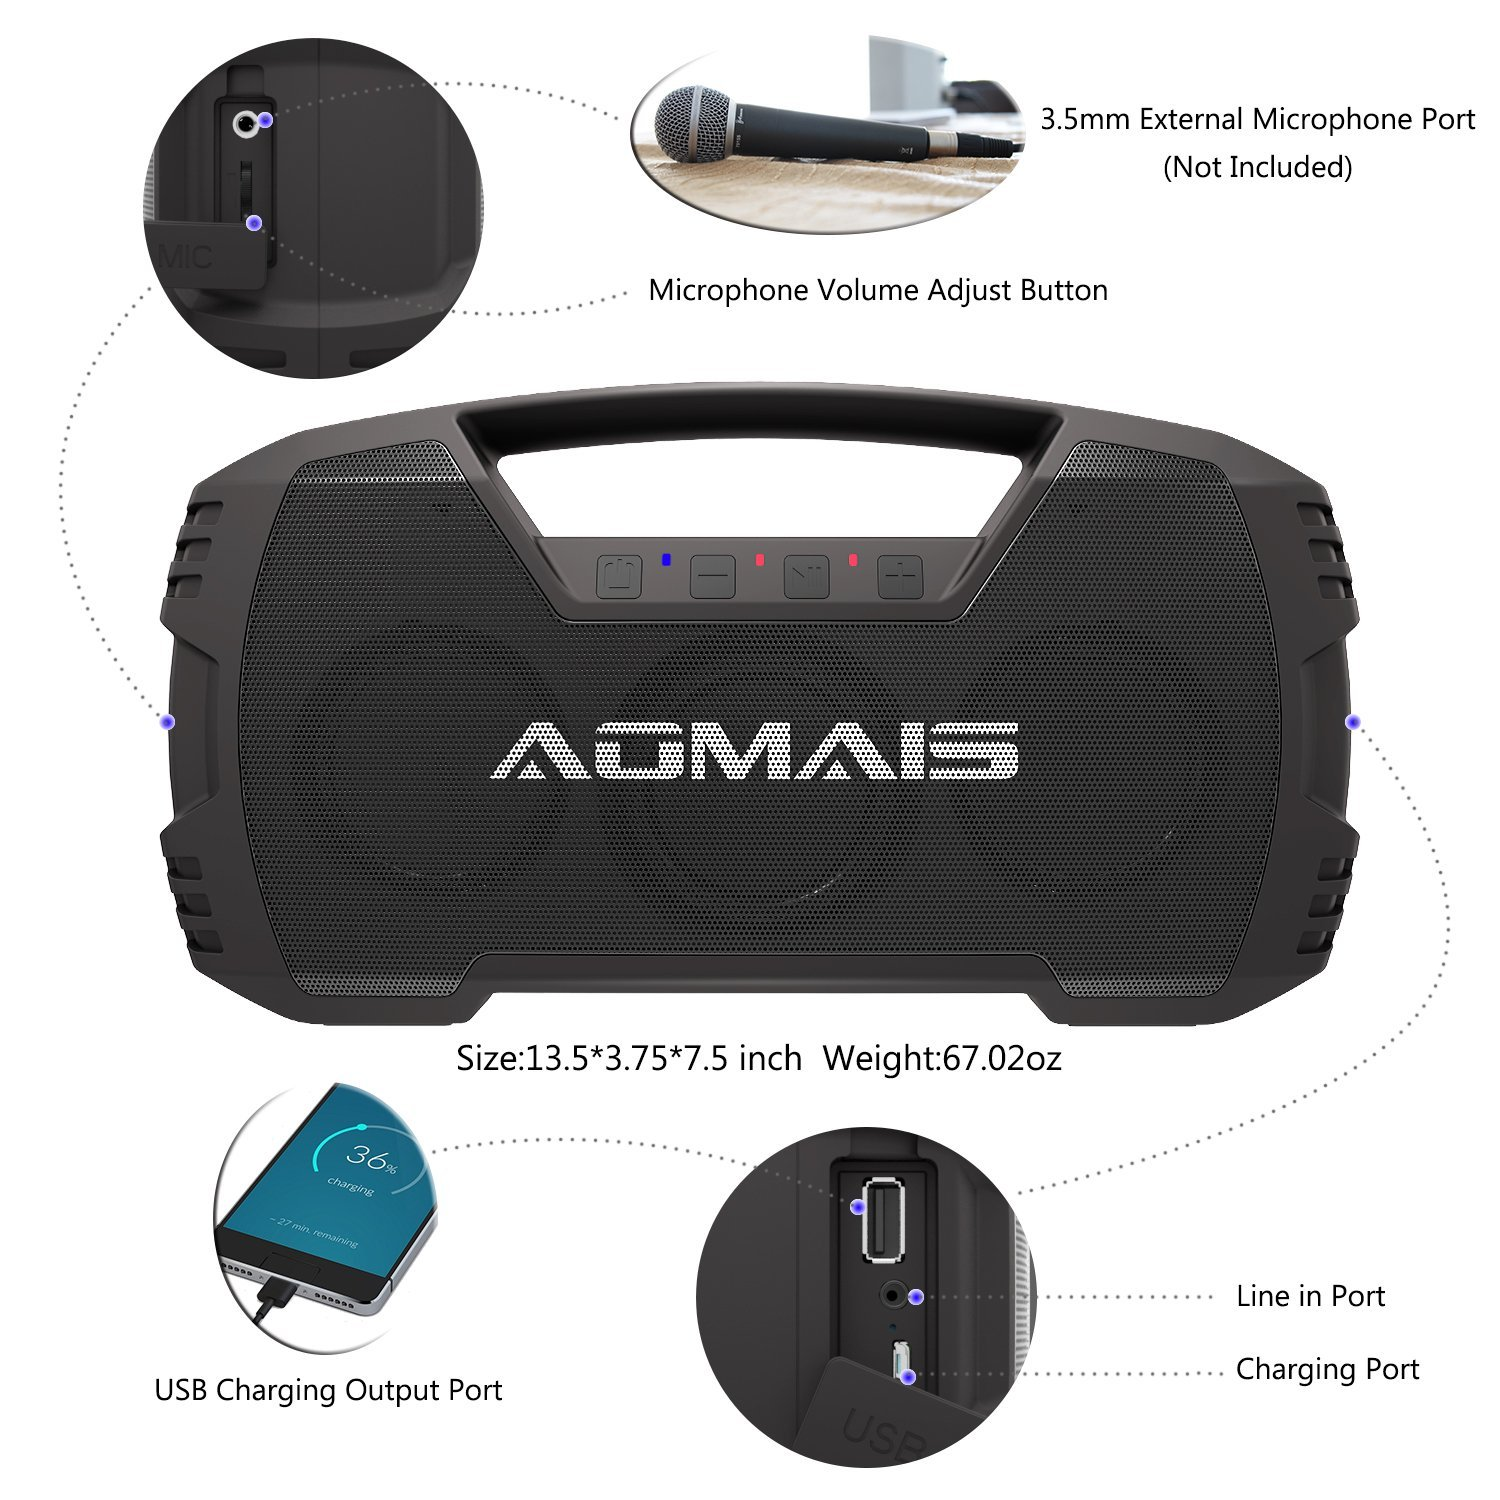 Aomais Go Portable Ipx7 Waterproof Bluetooth Speaker